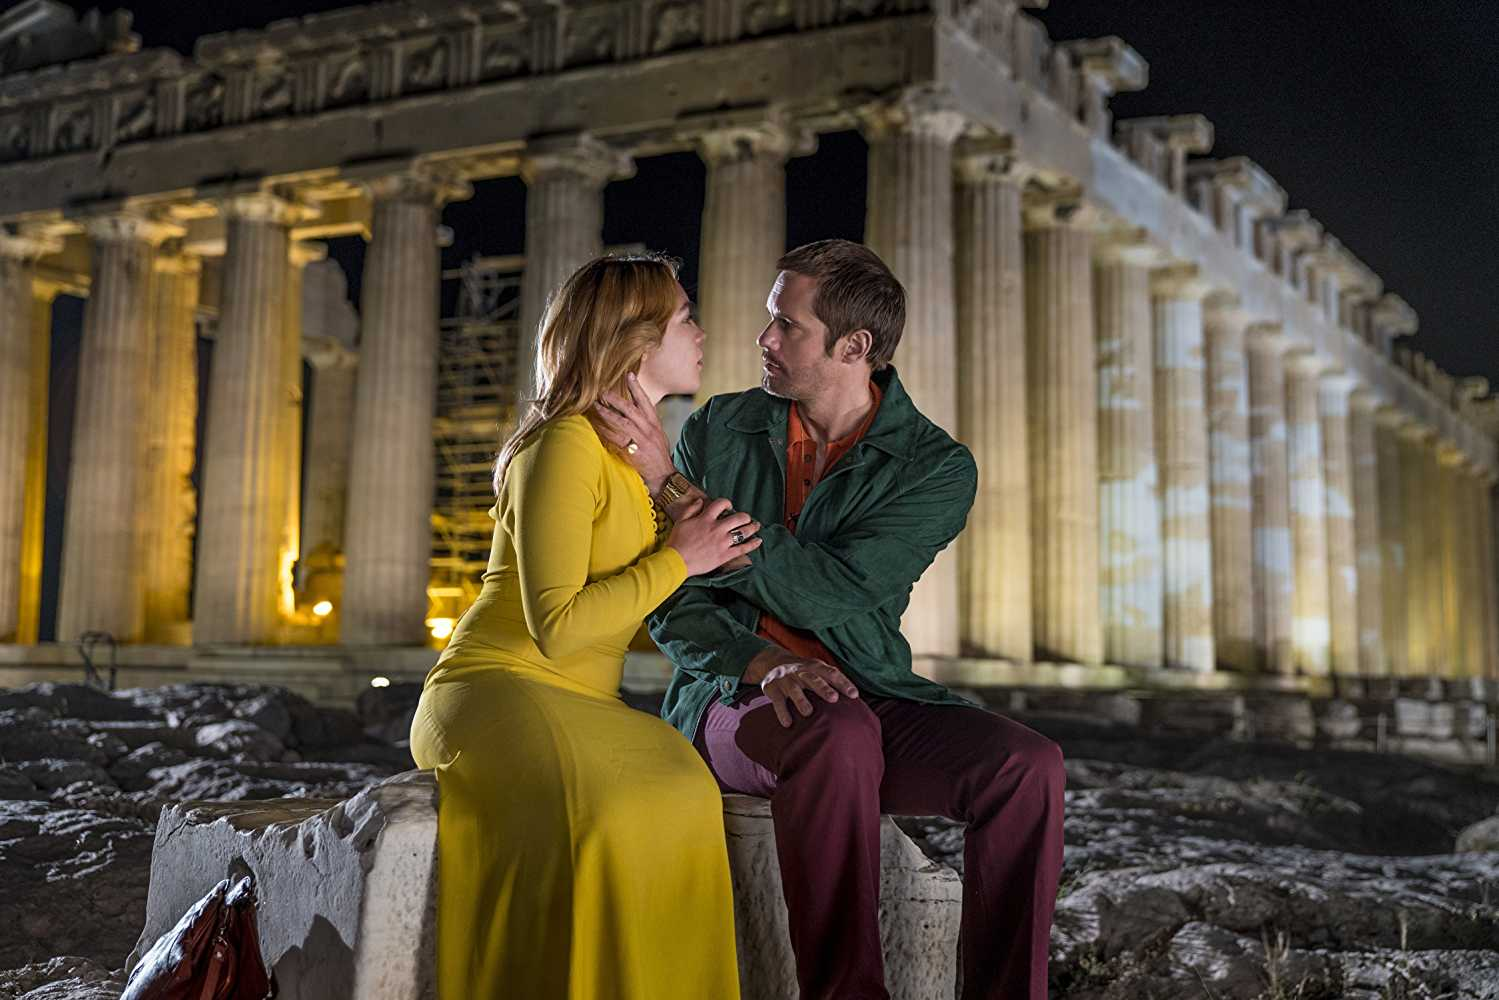 Becker took Charlie for a date to the Acropolis. (IMDb)